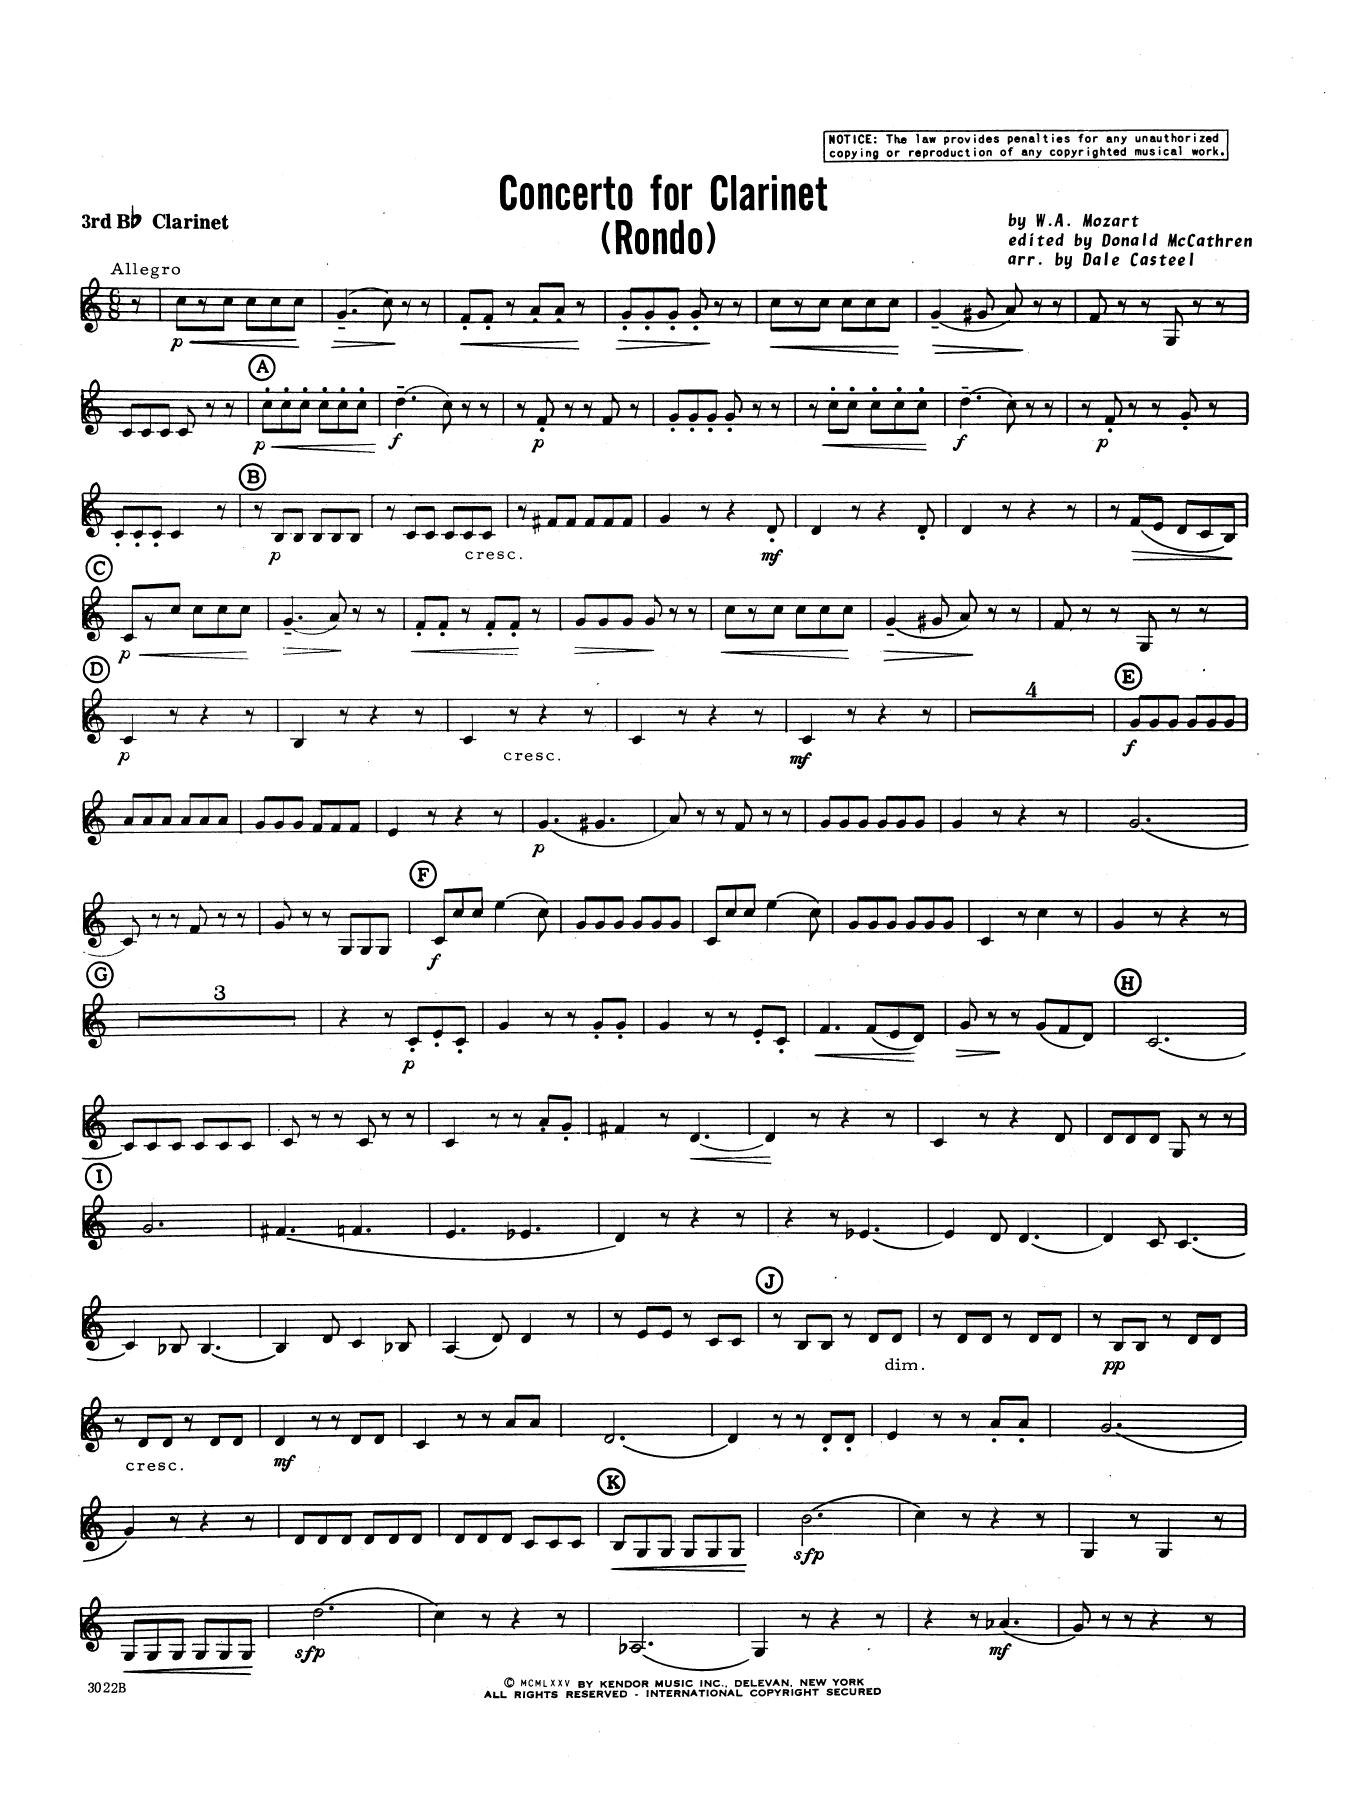 Donald McCathren and Dale Casteel Concerto For Clarinet - Rondo (3rd Movement) - K.622 - 3rd Bb Clarinet sheet music notes printable PDF score